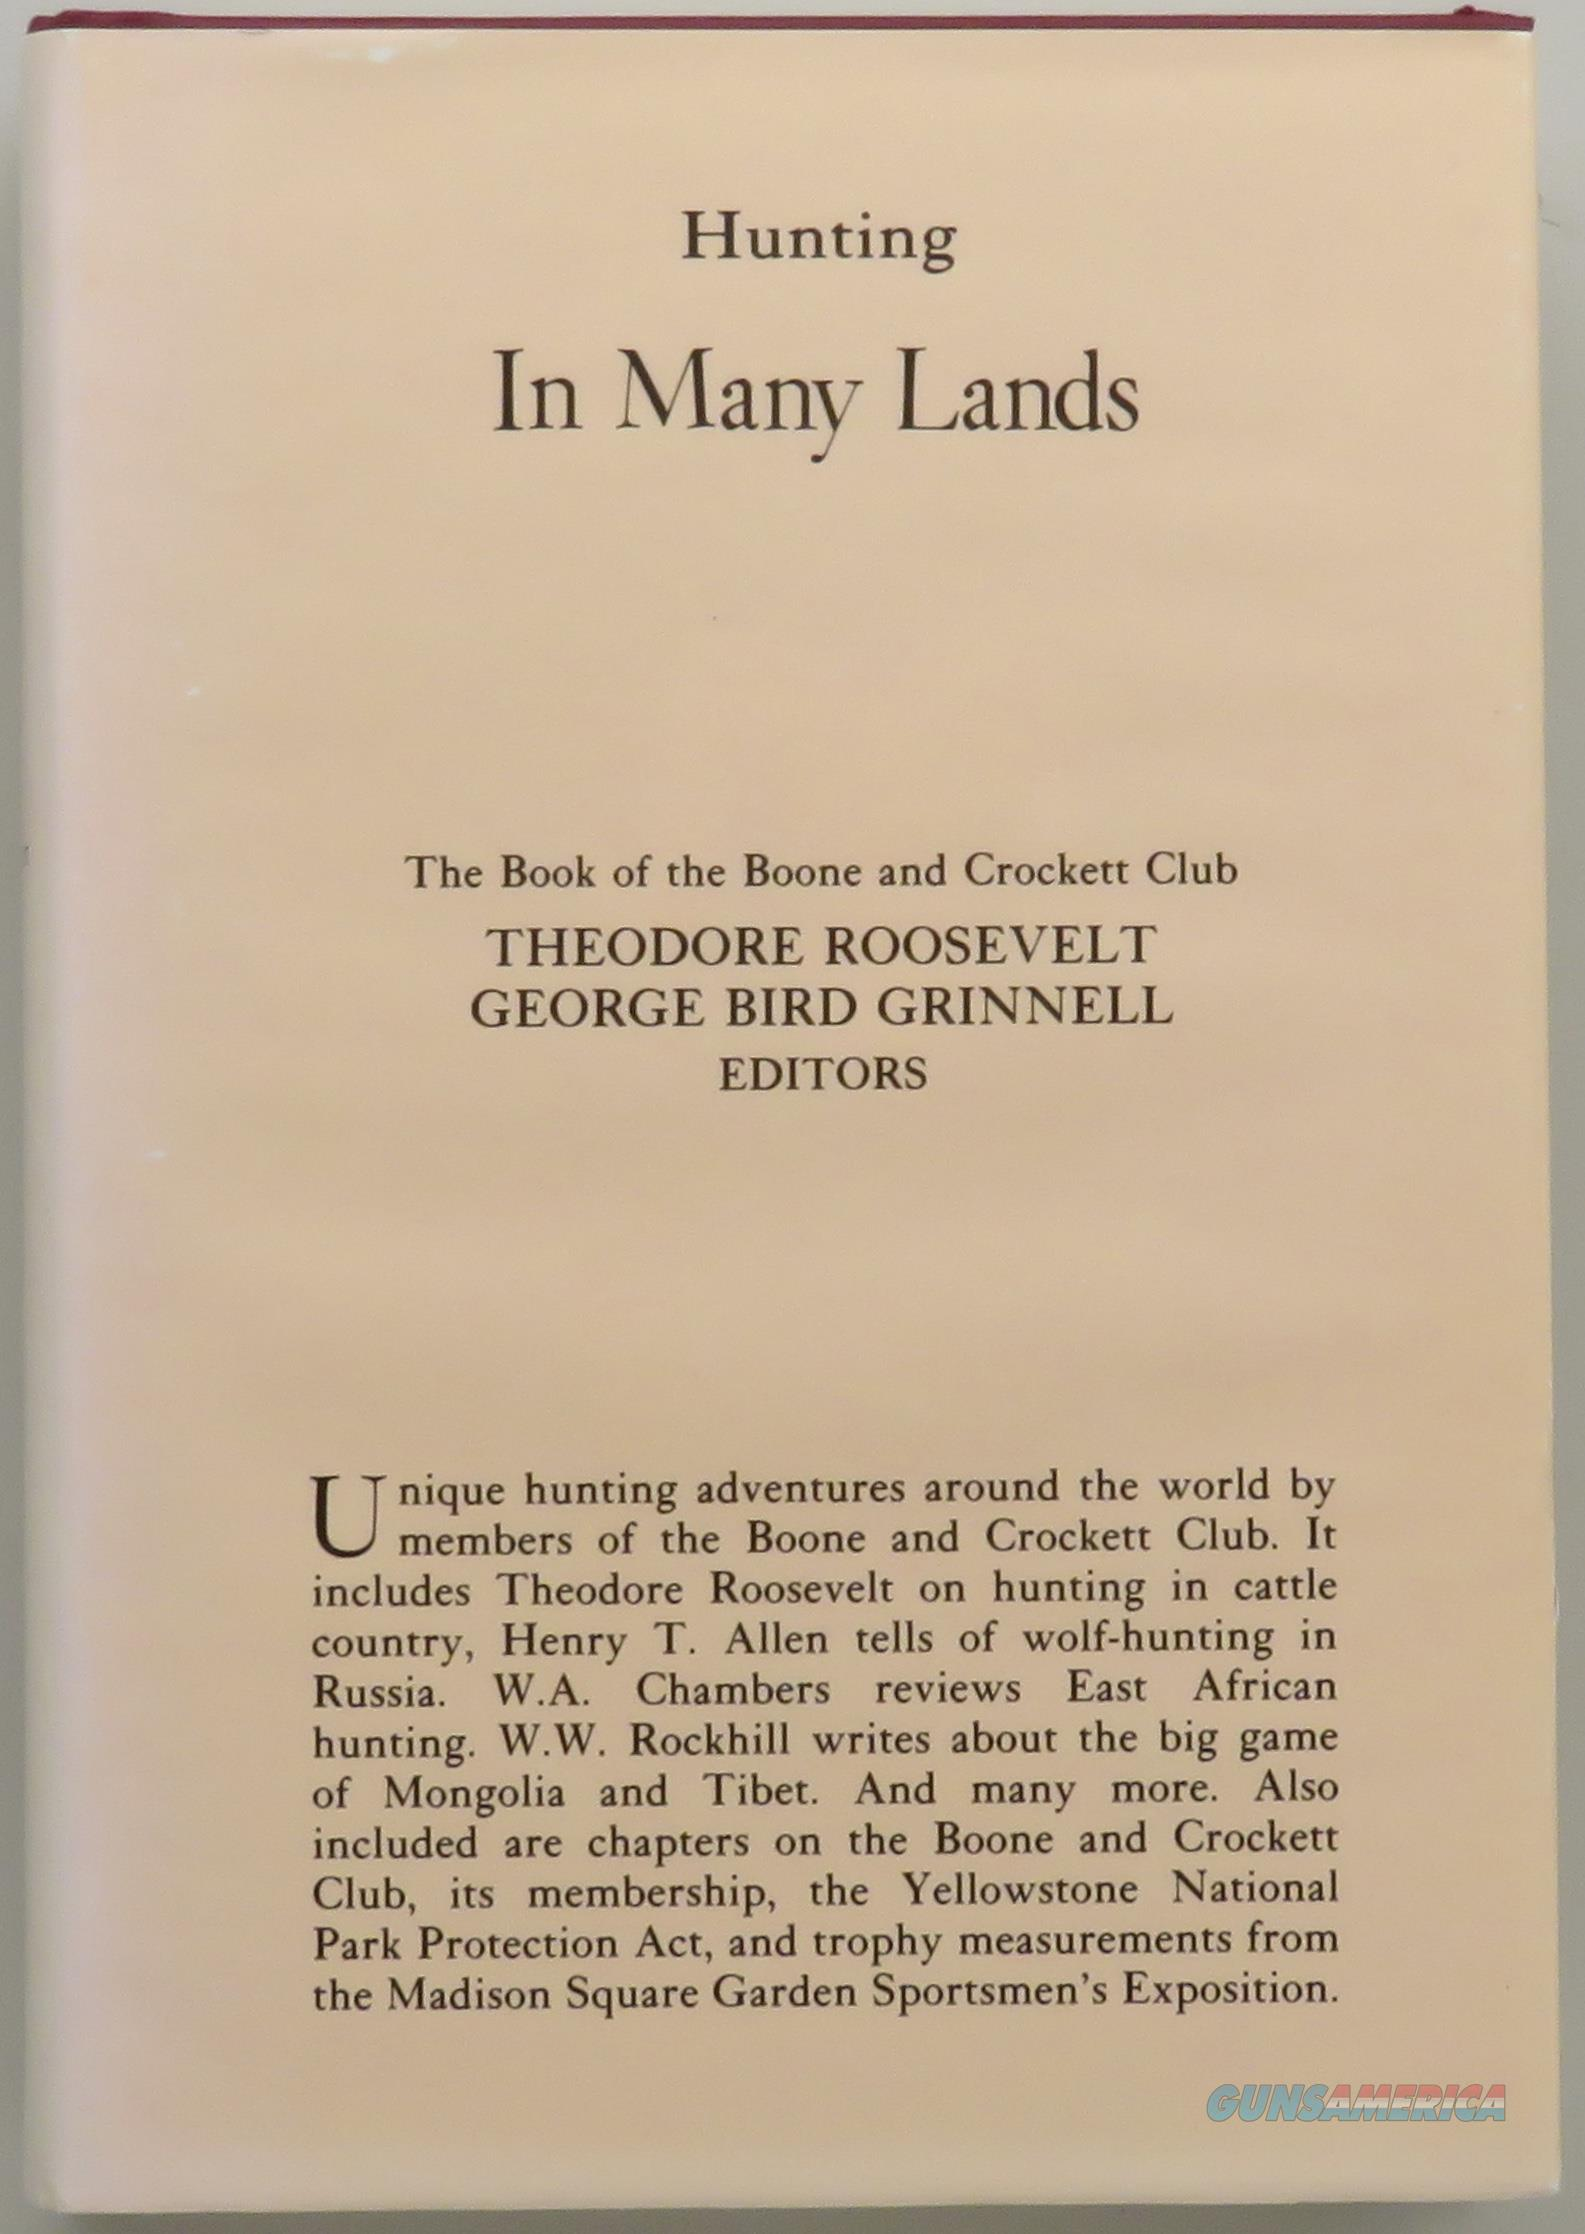 Hunting In Many Lands, Roosevelt & Grinnell, Boone & Crockett Club, Acorn Series reprint  Non-Guns > Books & Magazines